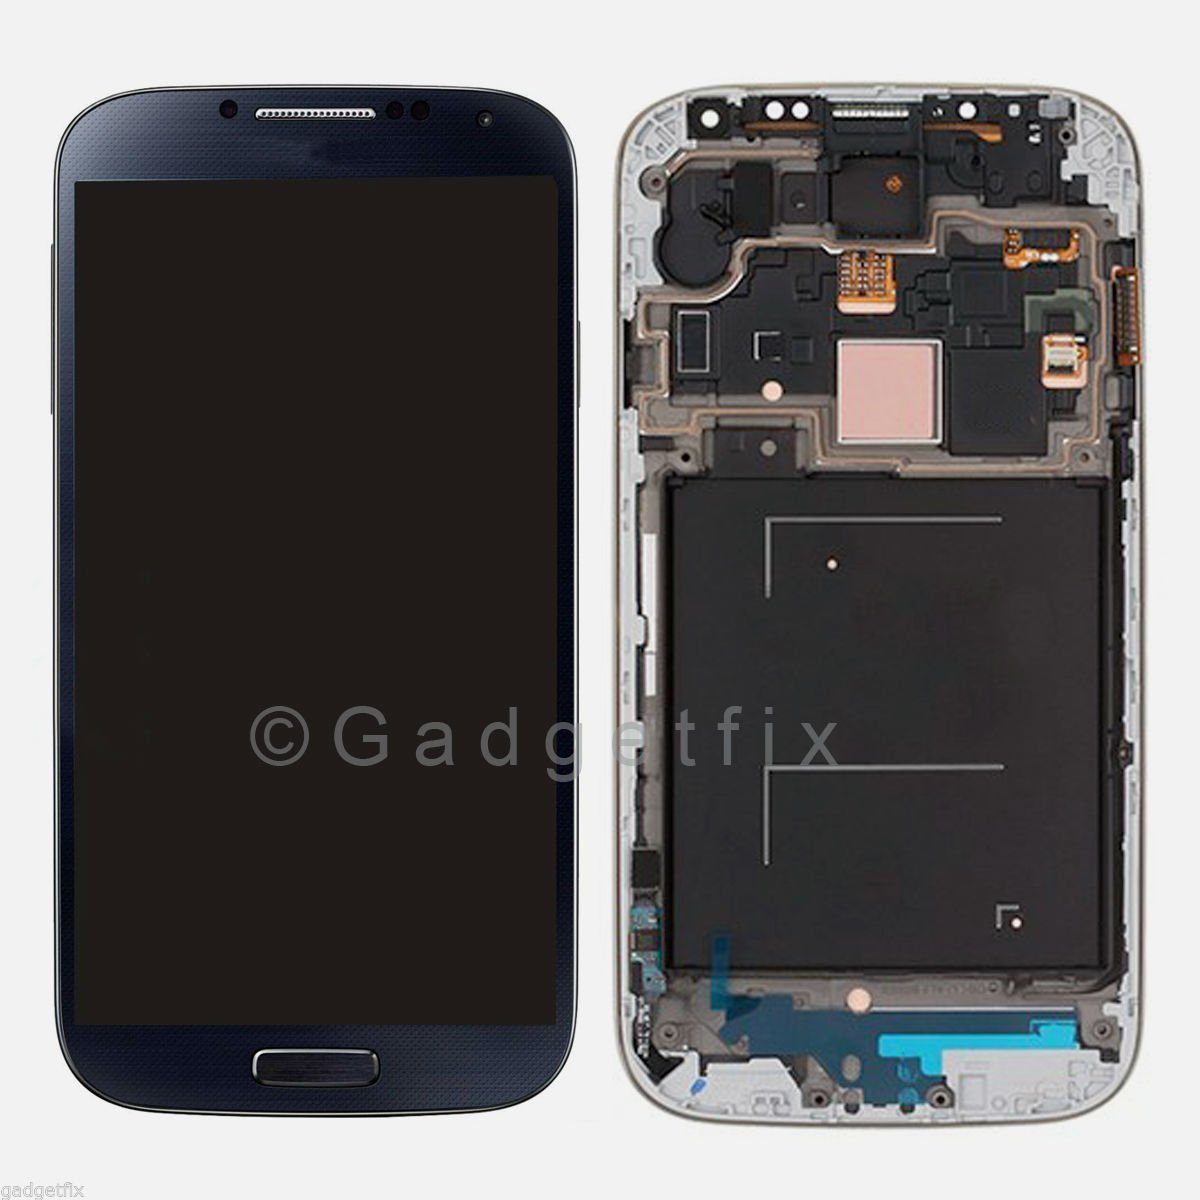 Samsung Galaxy S4 i9505 L720T LCD Screen Display Touch Screen Digitizer + Frame